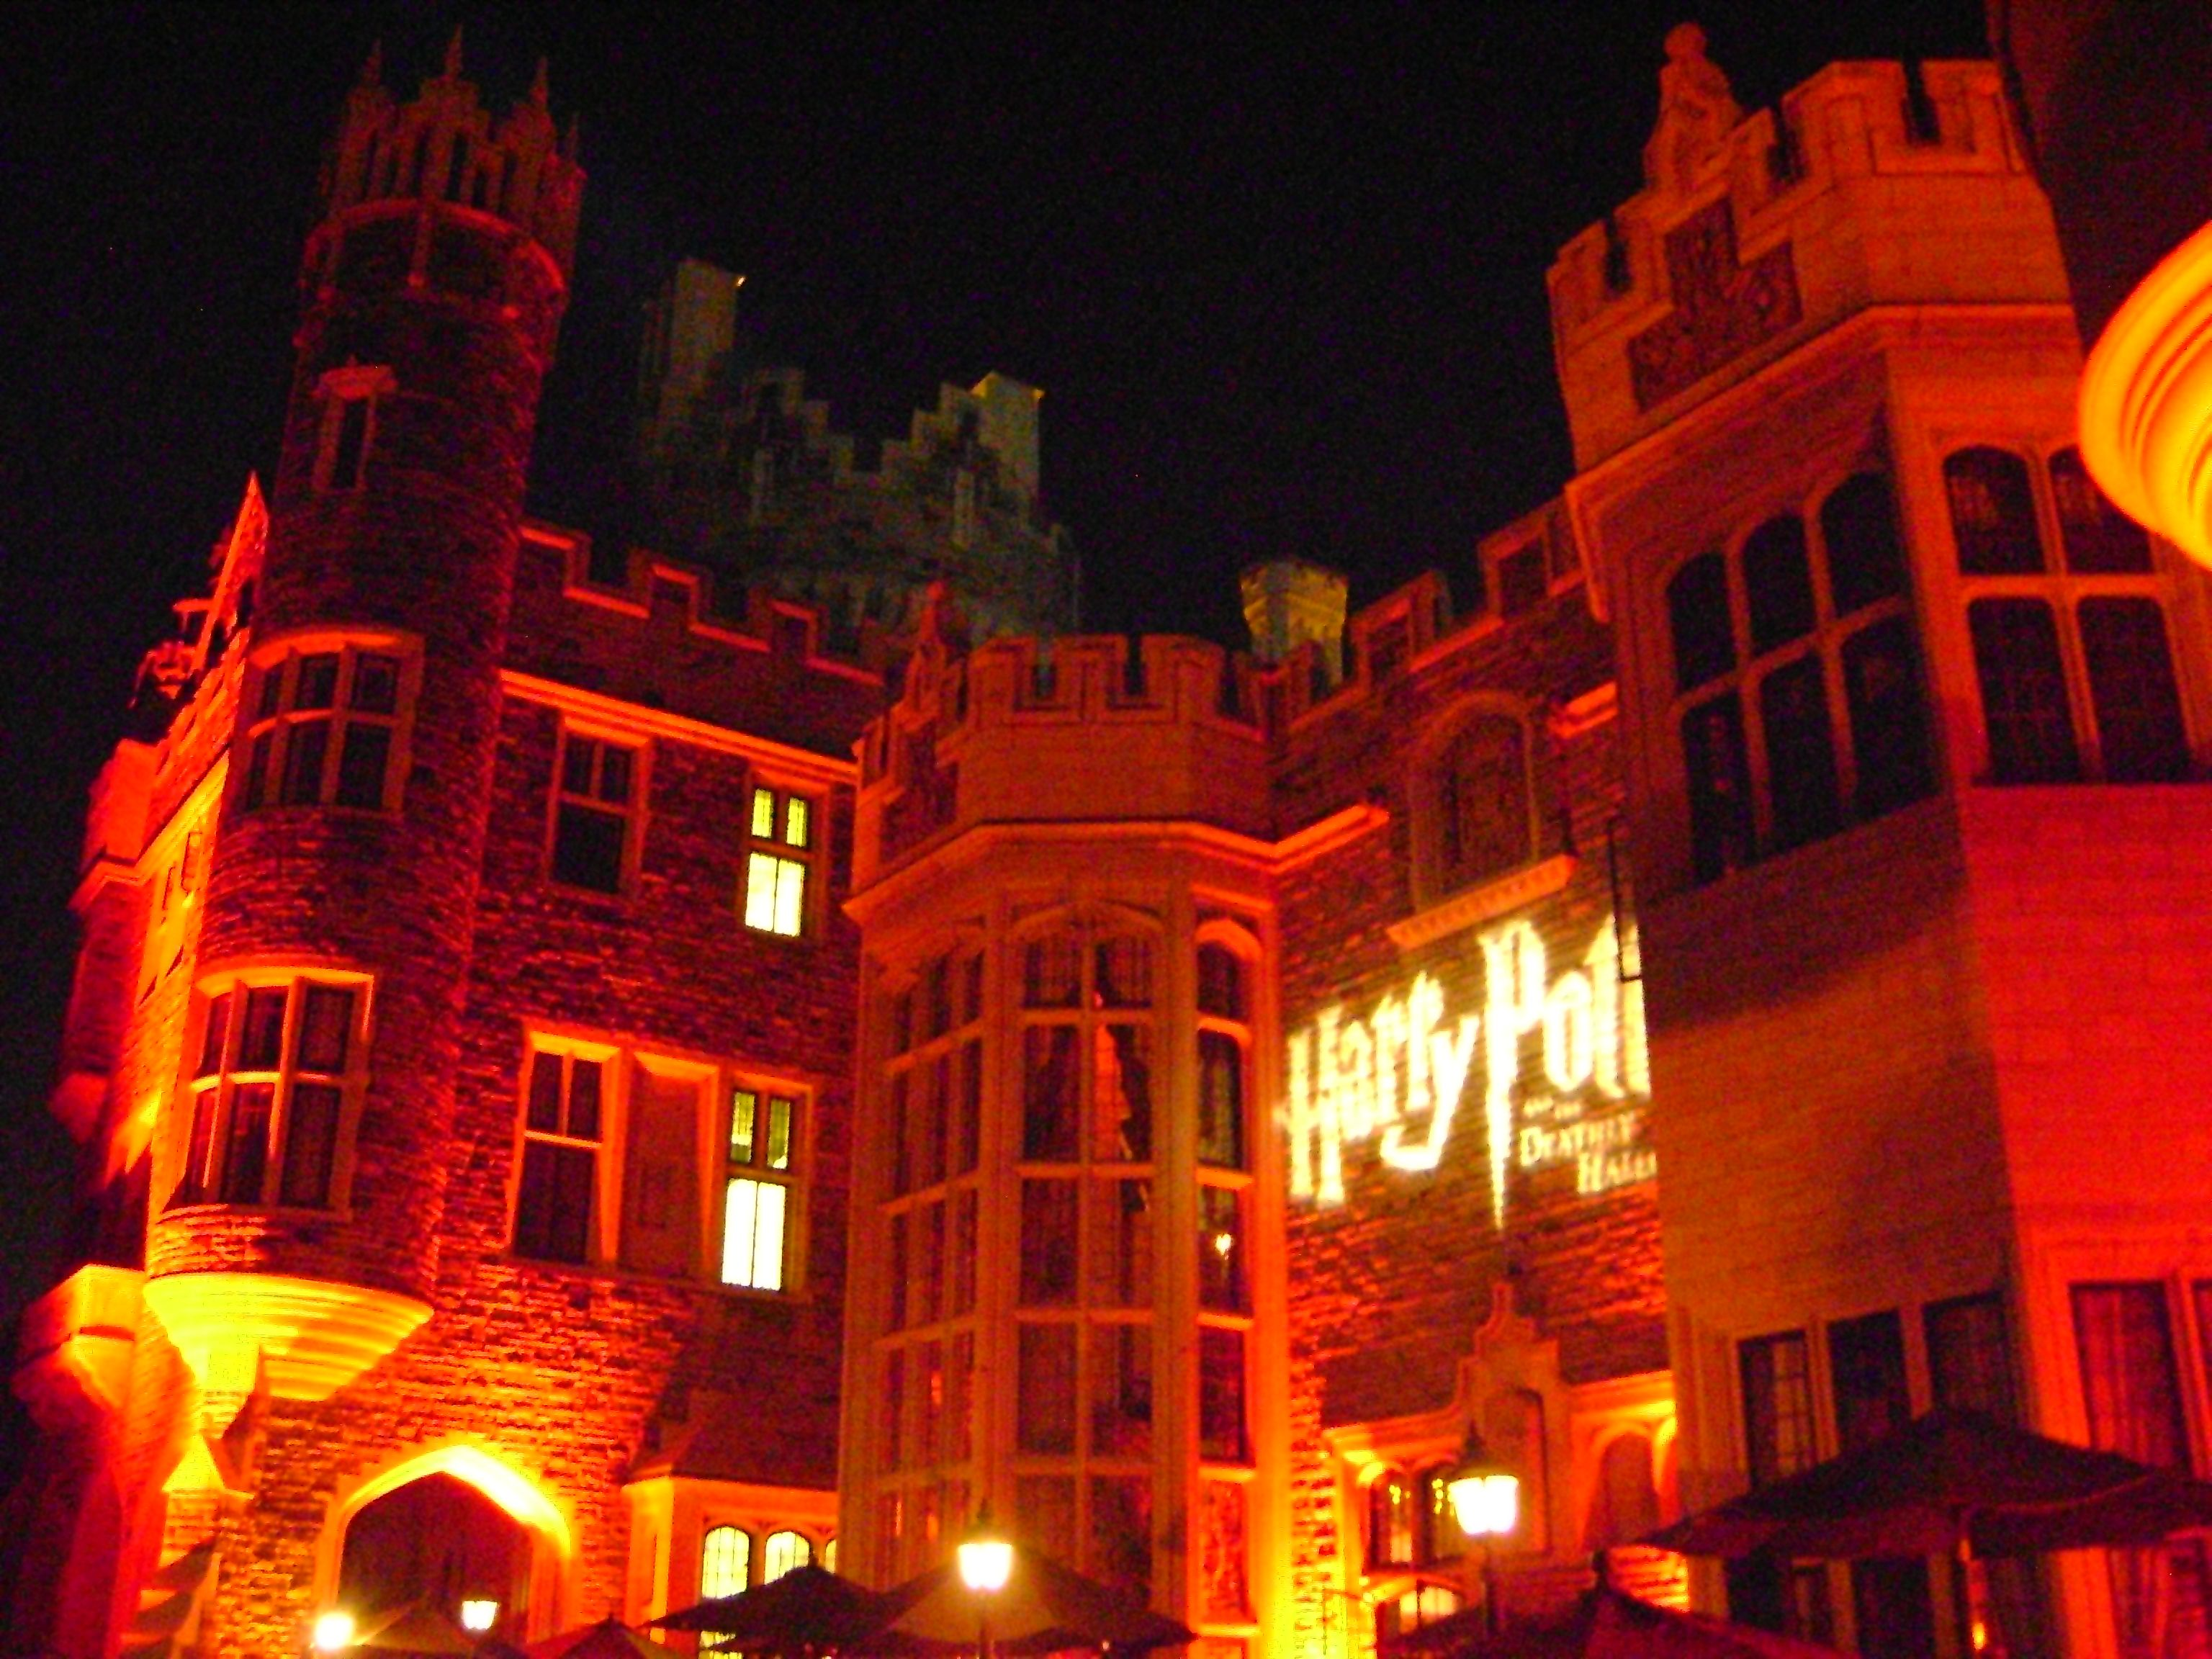 Casa Loma In Toronto All Done Up For The Harry Potter Dhp2 Premiere Which I Was Lucky Enough To